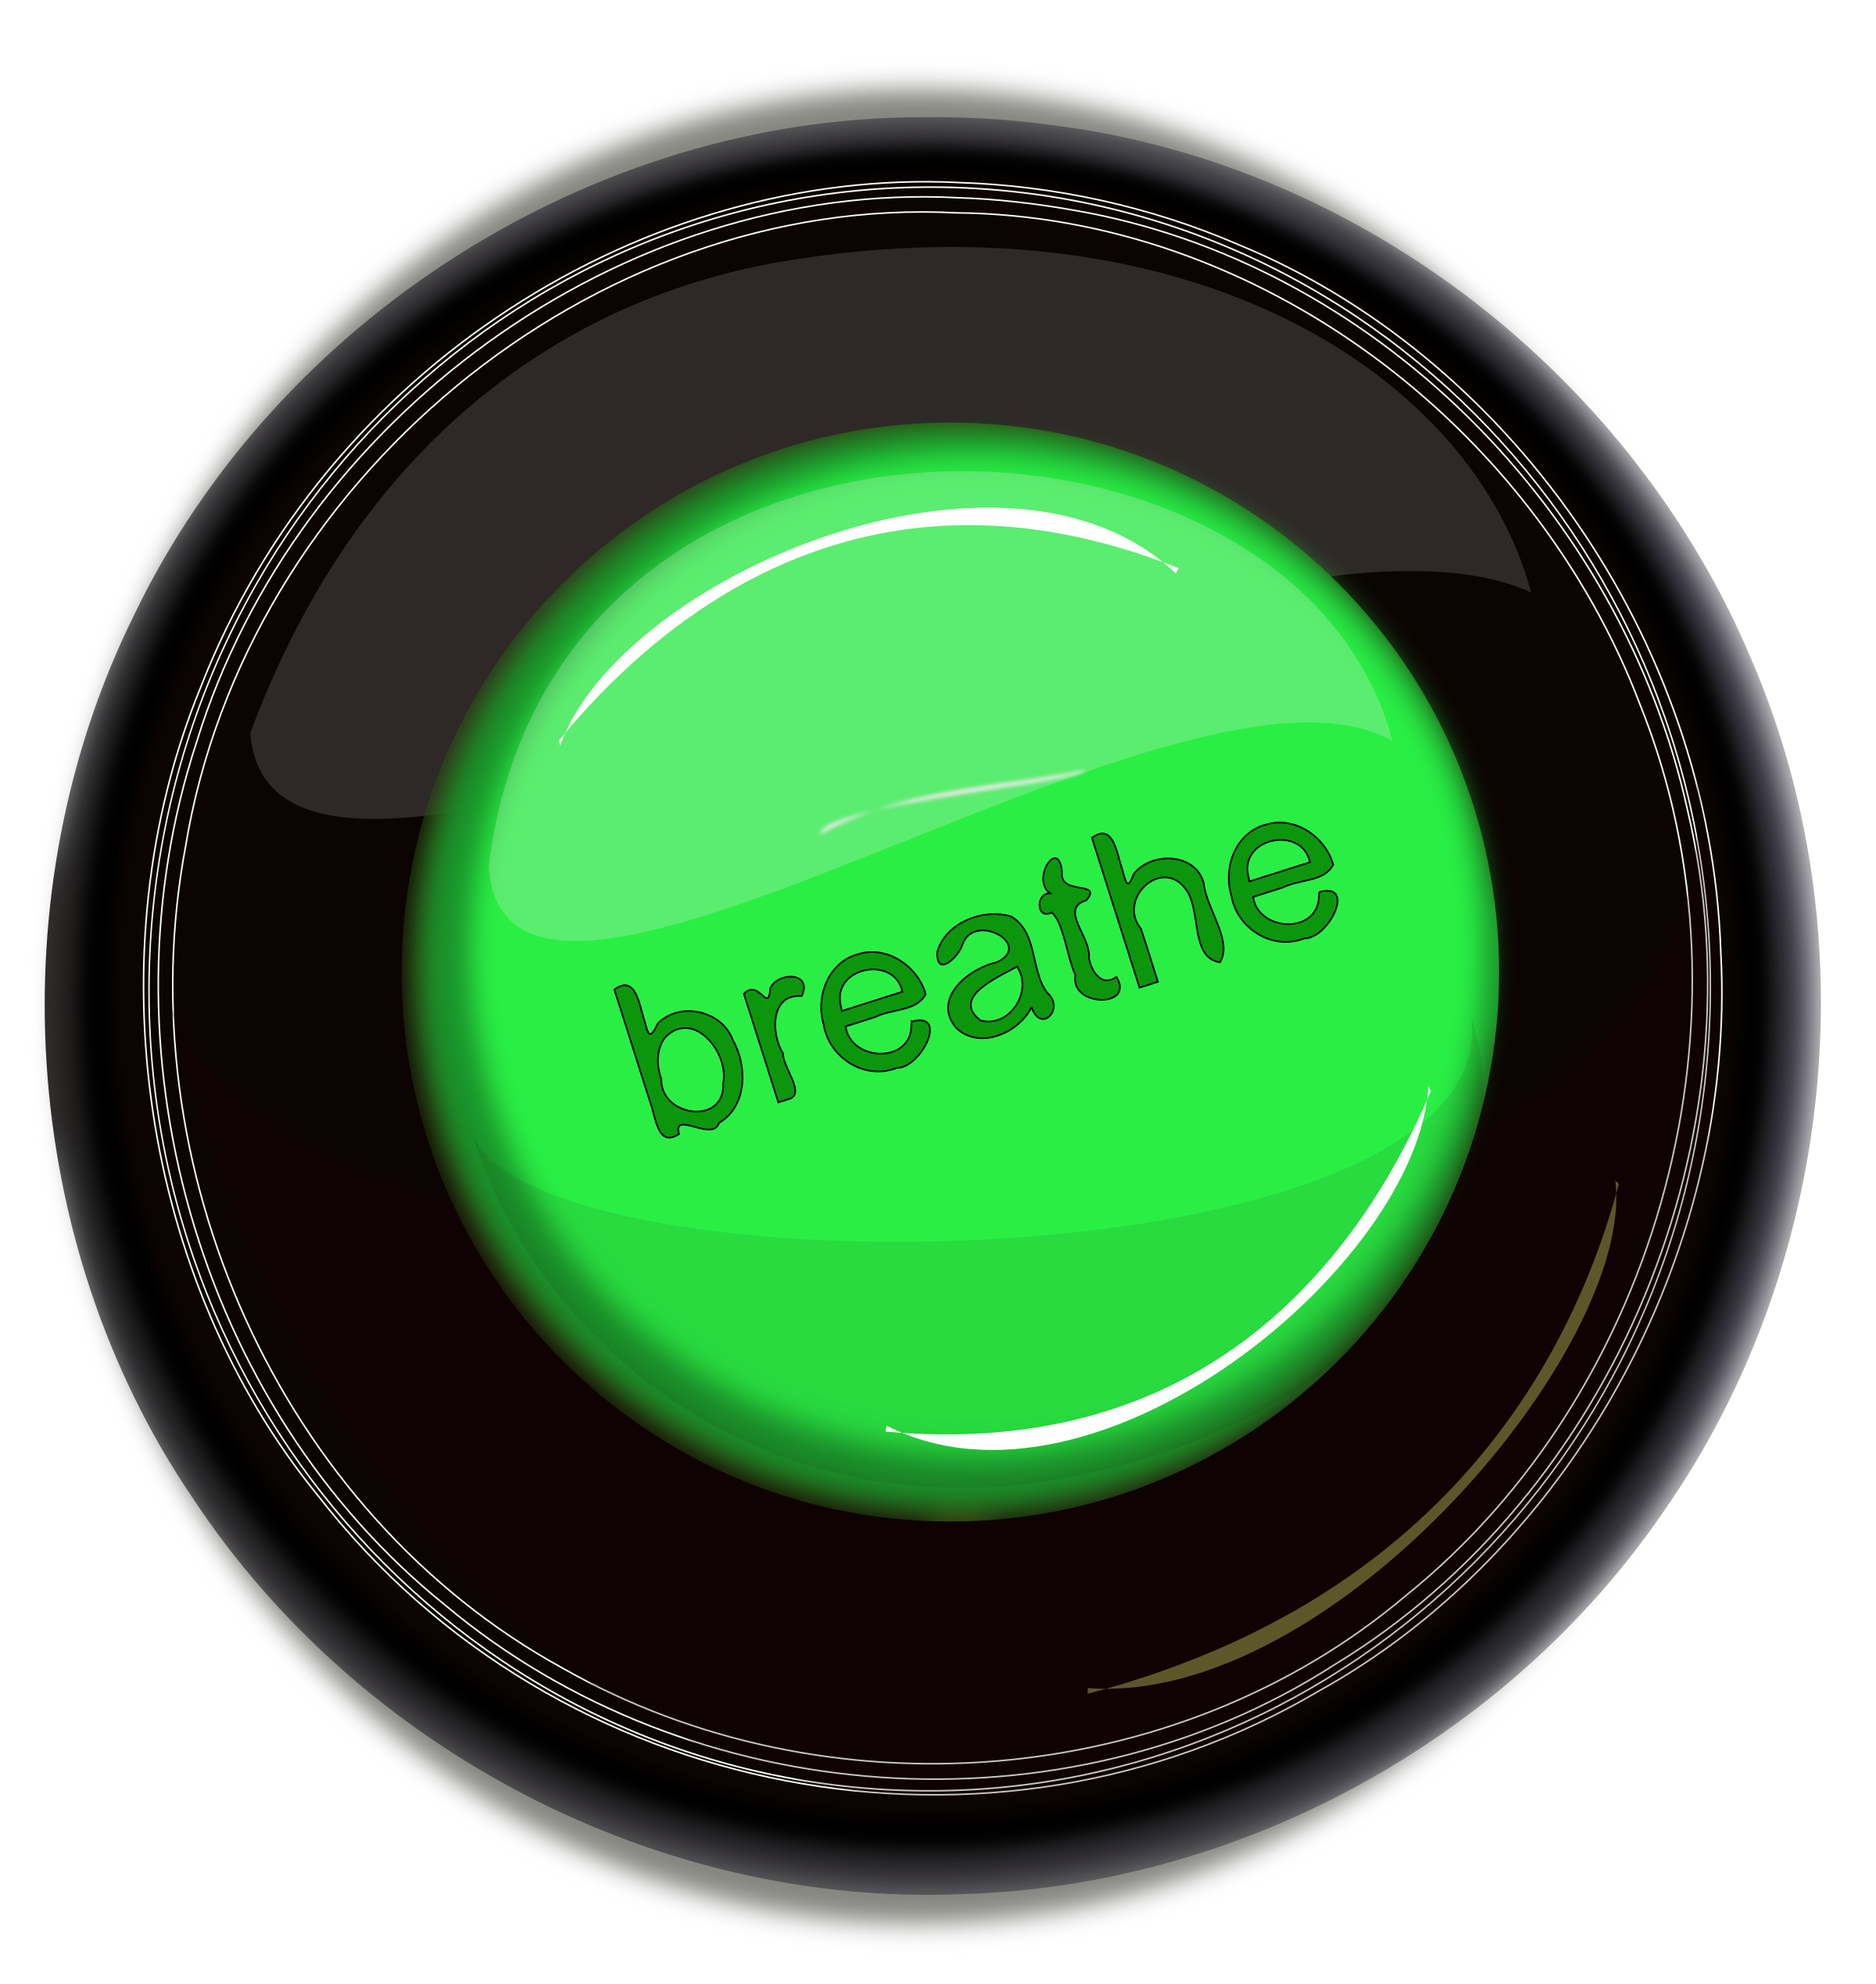 breathe icon button by laurianne